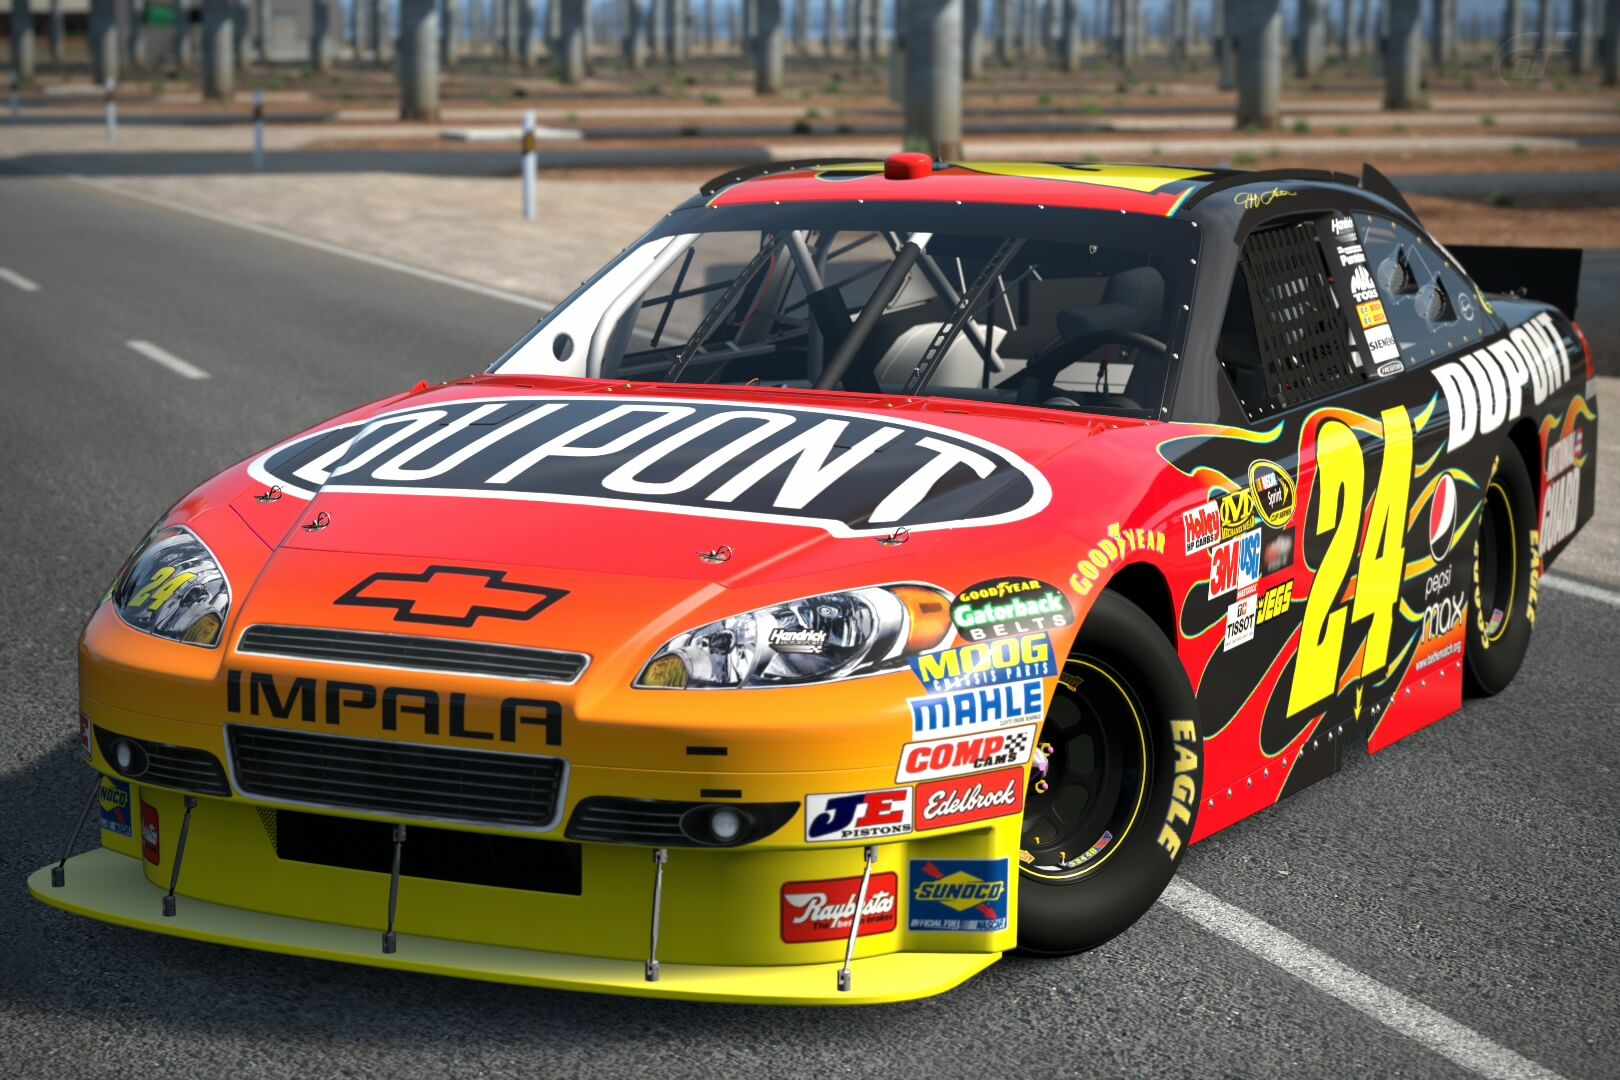 image 2010 jeff gordon 24 dupont chevrolet impala 39 gran turismo wiki fandom. Black Bedroom Furniture Sets. Home Design Ideas